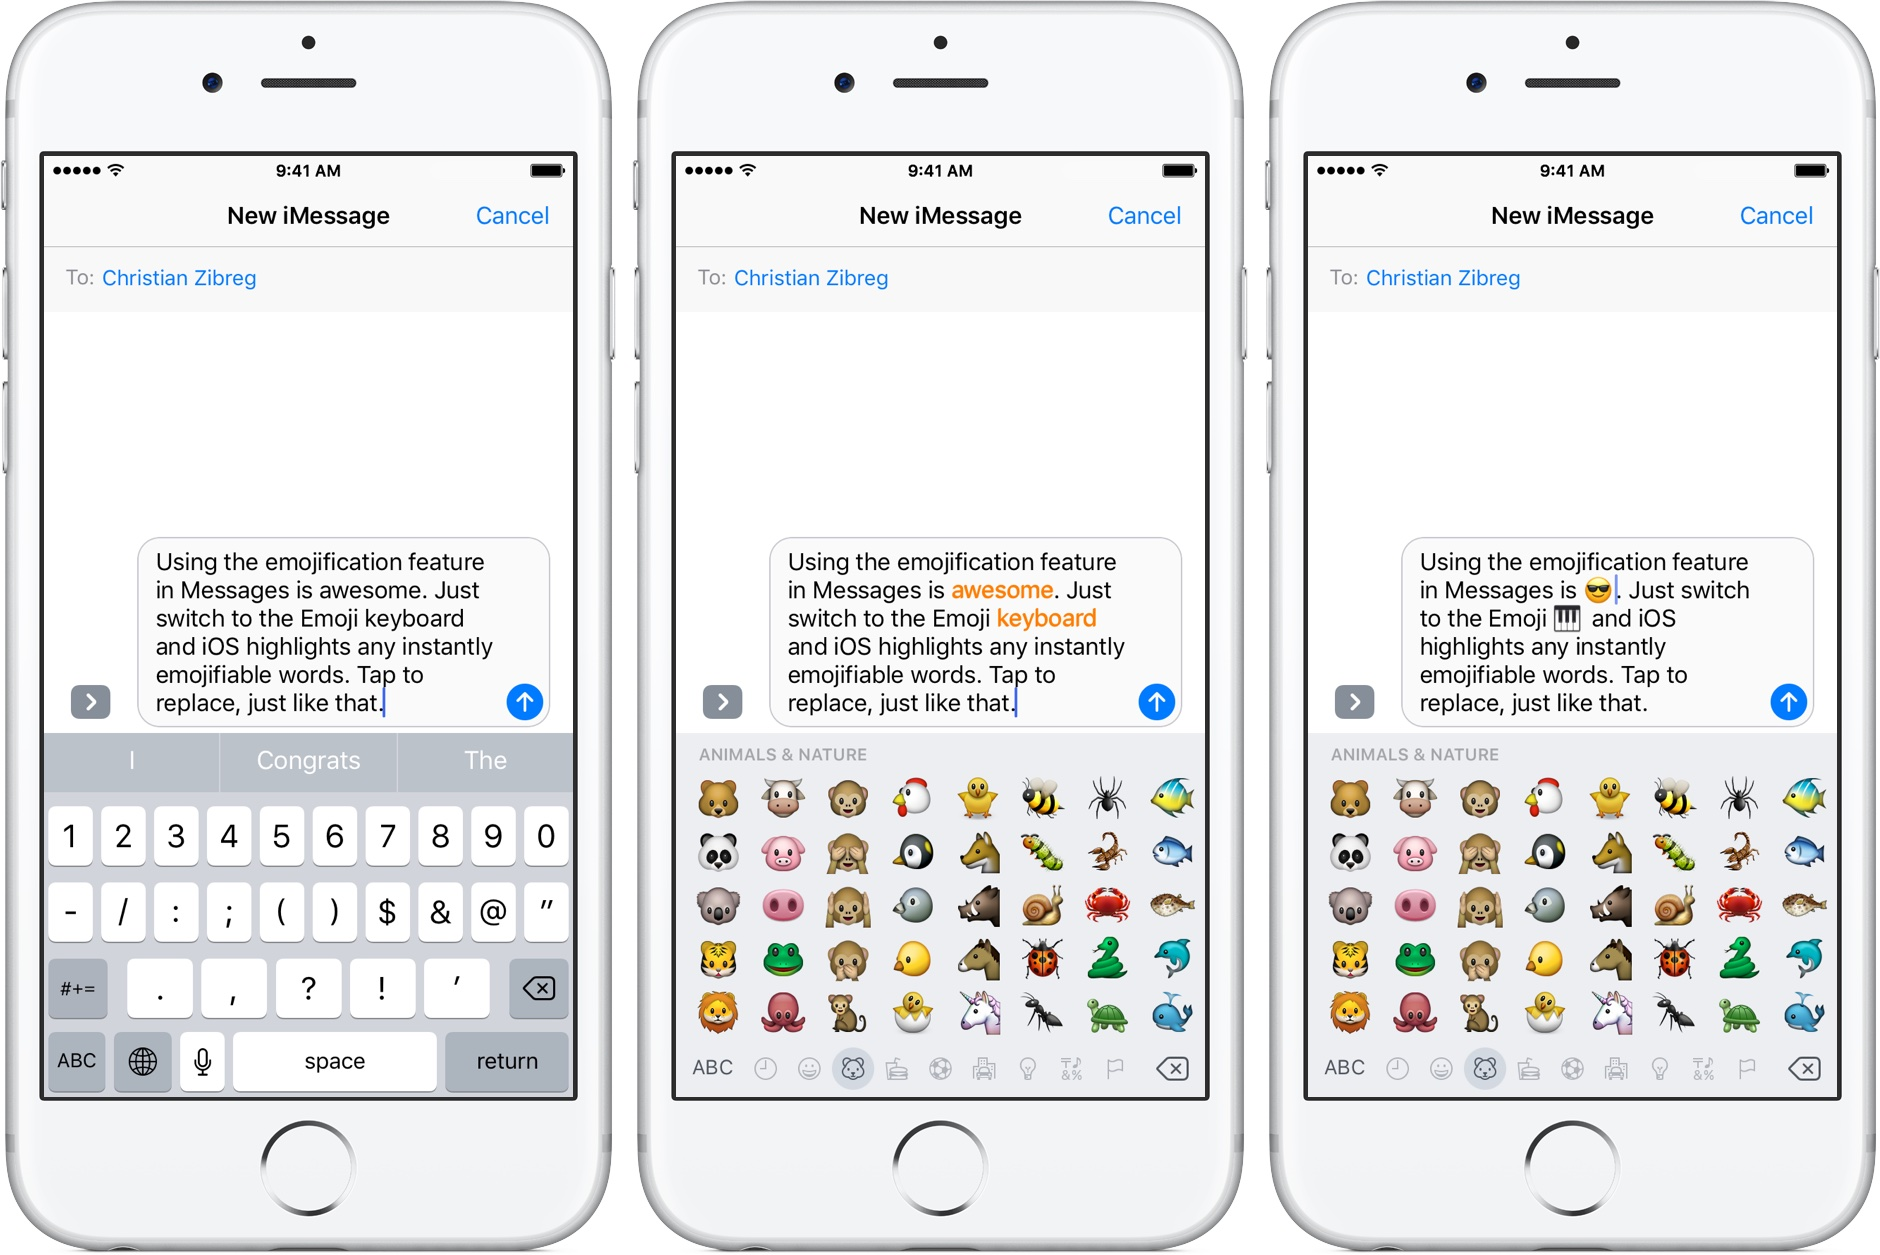 iOS 10 Messages tap to replace with emoji silver iPhone screenshot 002